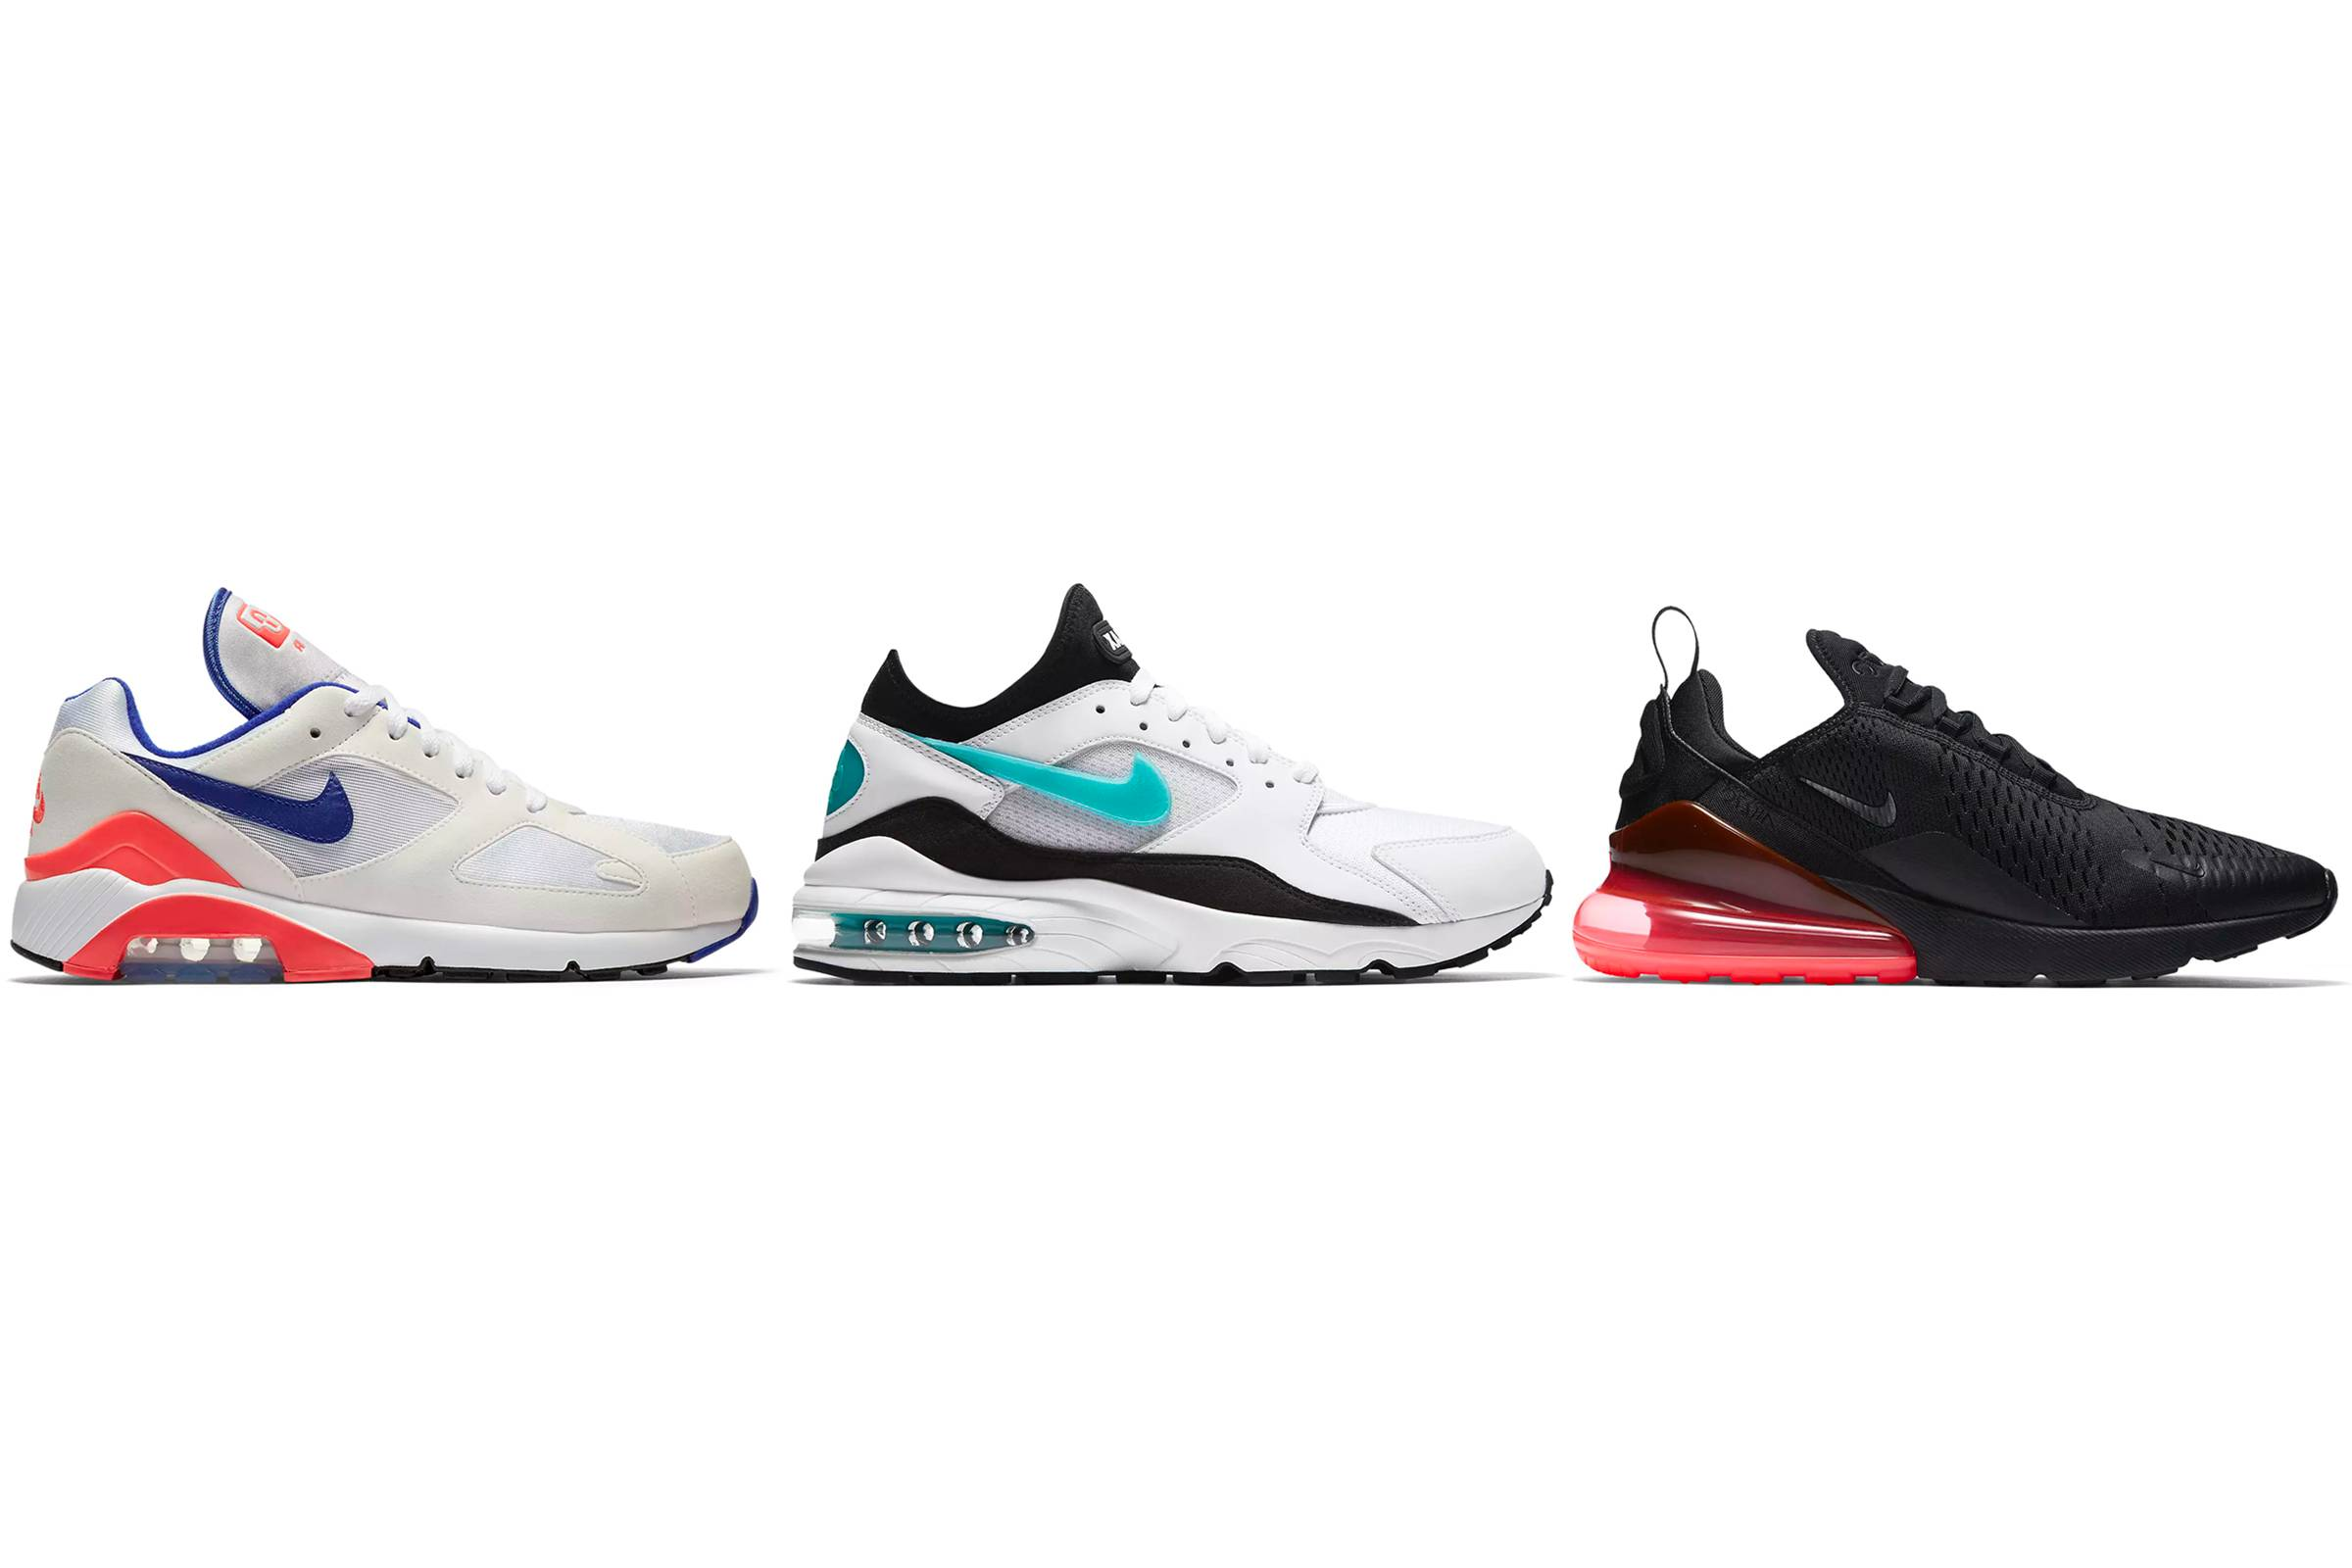 2d26c8c2bad7 Degrees of Air  The Evolution of the Air Max Heel Unit - Air Max 180 ...